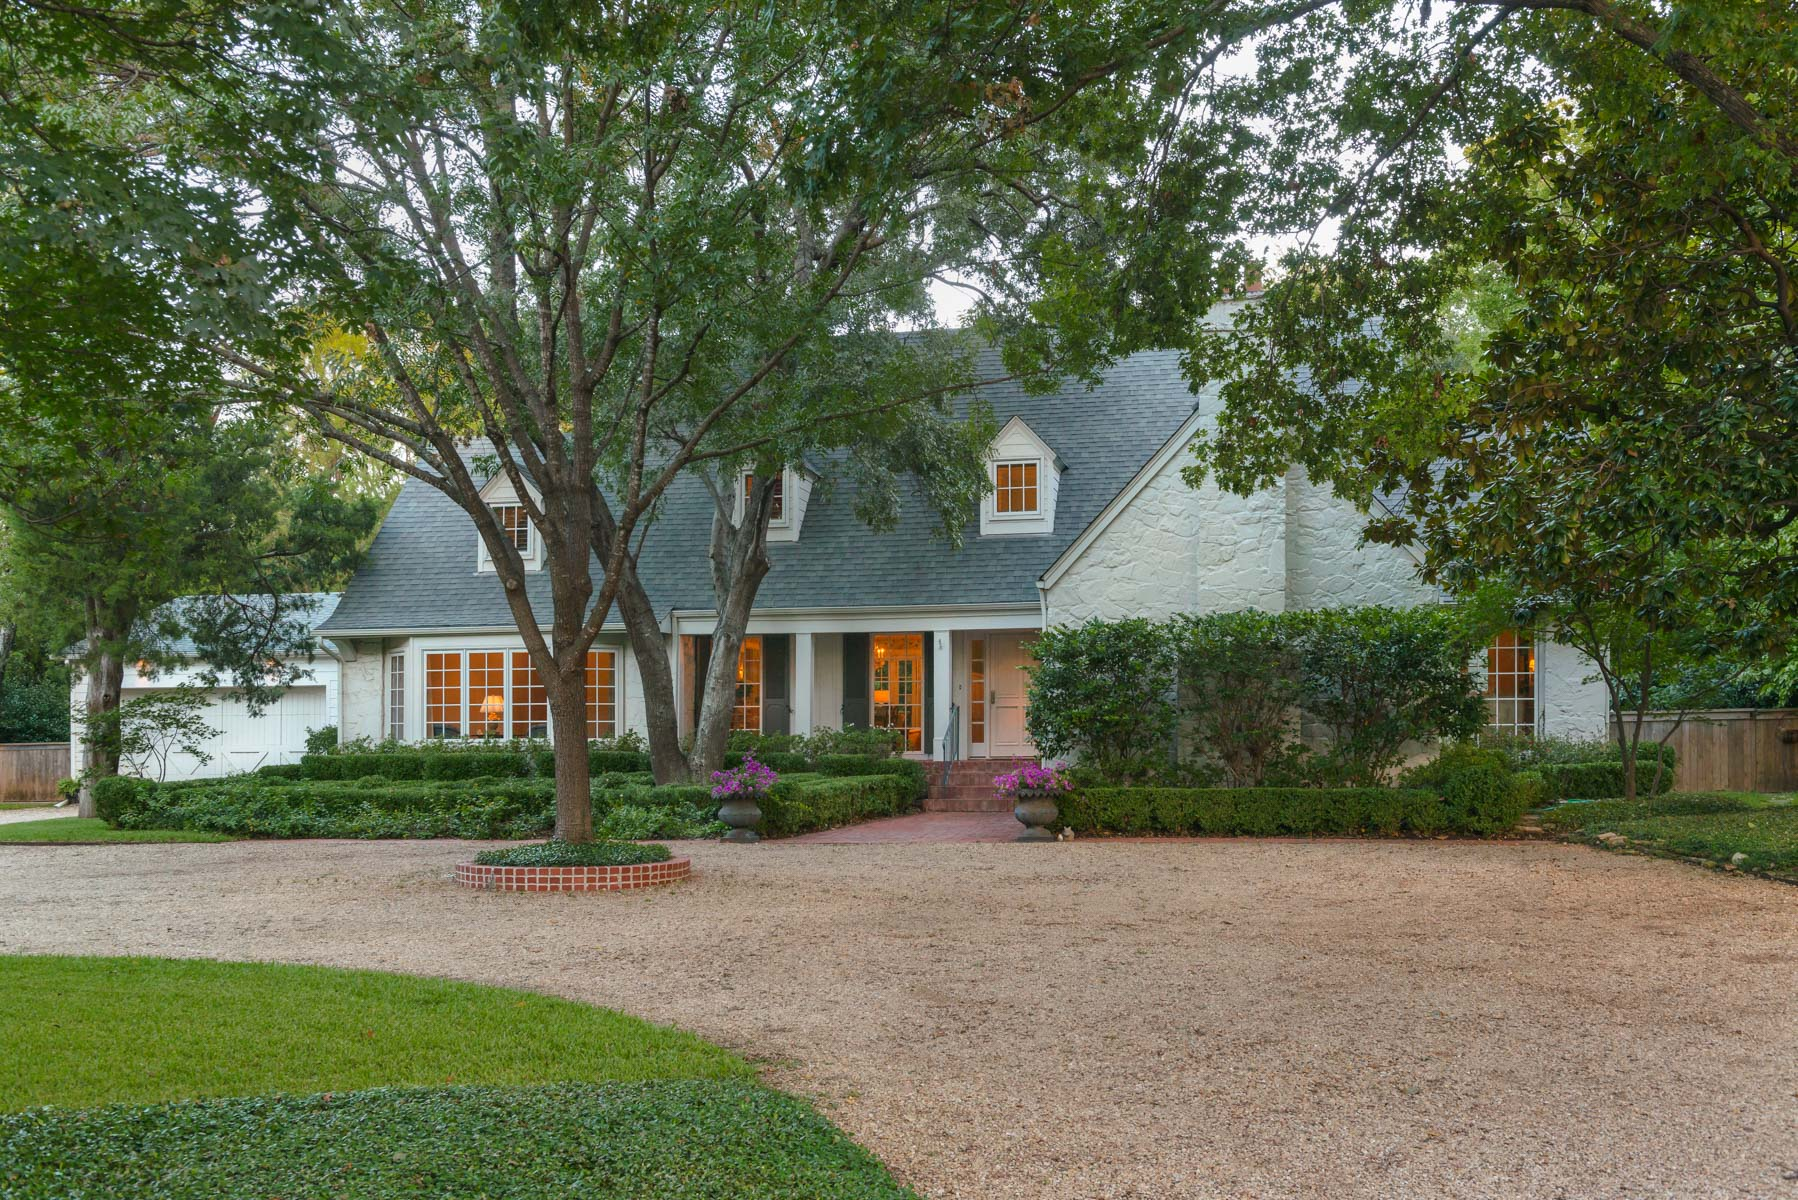 Maison unifamiliale pour l Vente à Updated Preston Hollow Estate 9500 Inwood Rd Dallas, Texas, 75220 États-Unis